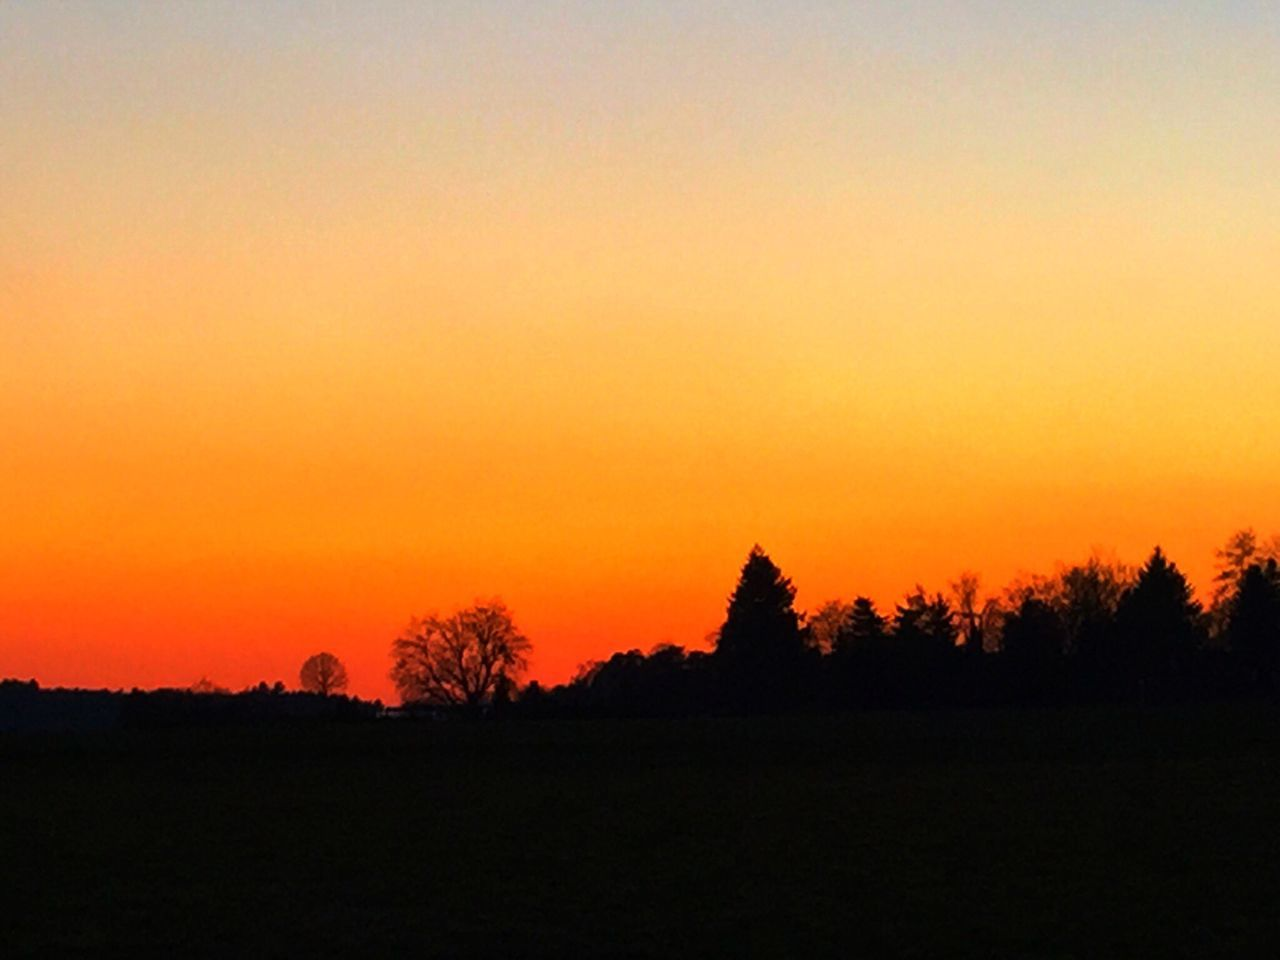 silhouette, sunset, nature, landscape, tranquil scene, orange color, tree, beauty in nature, tranquility, scenics, clear sky, no people, outdoors, sky